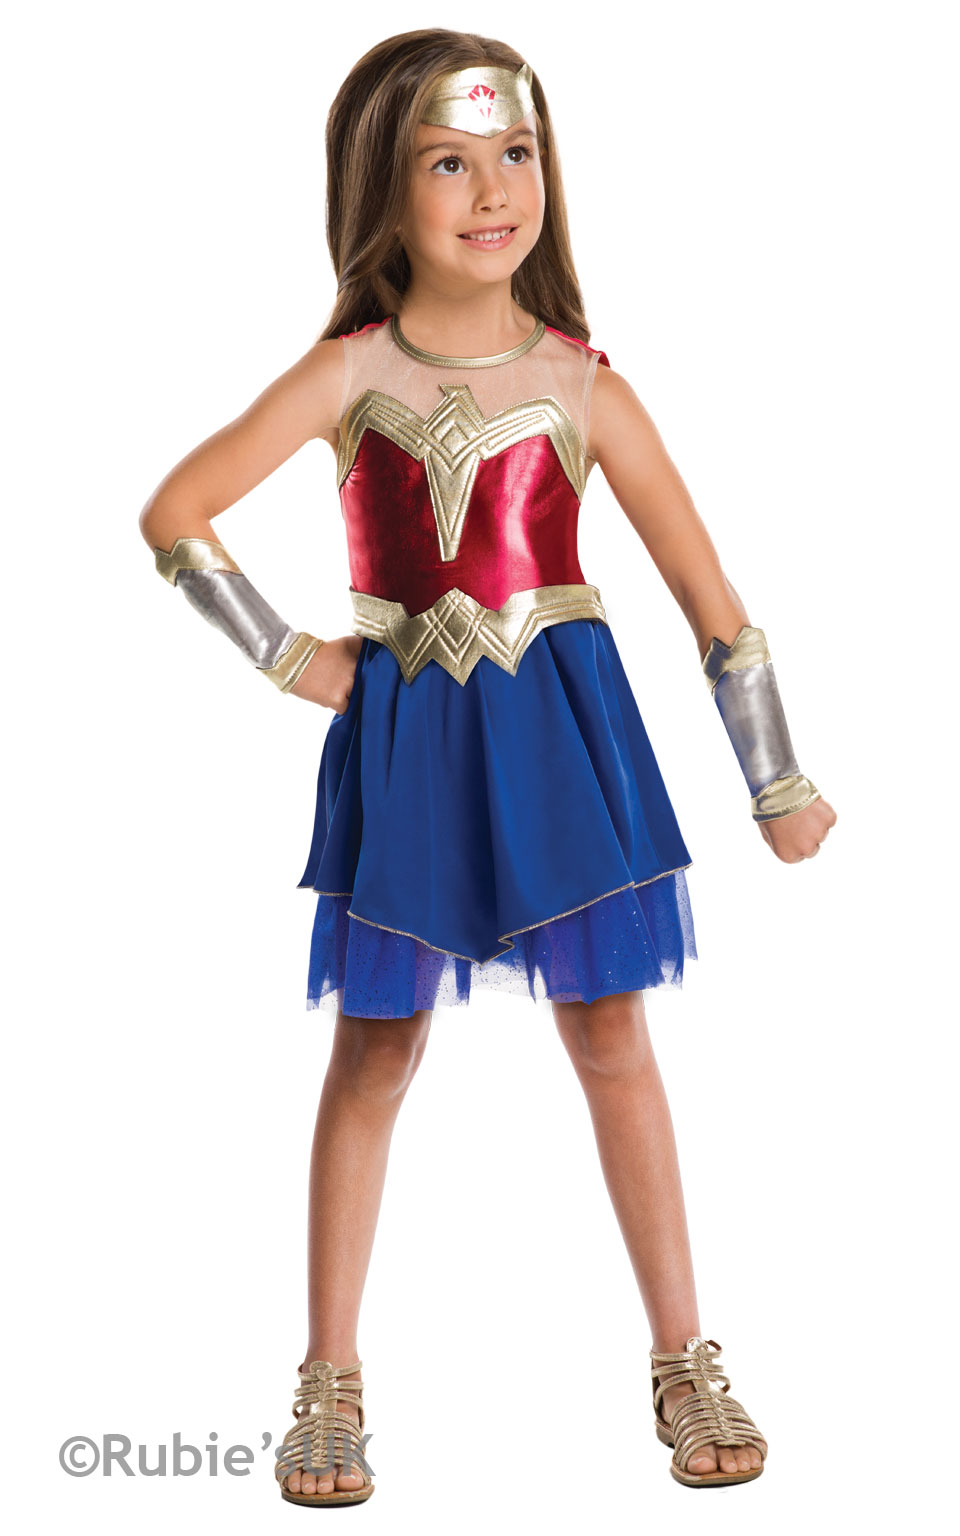 Girls Deluxe Dawn of Justice Wonder Woman Costume Kids Fancy Dress Outfit  sc 1 st  Wonderland Party & Girls Deluxe Dawn of Justice Wonder Woman Costume Kids Fancy Dress ...